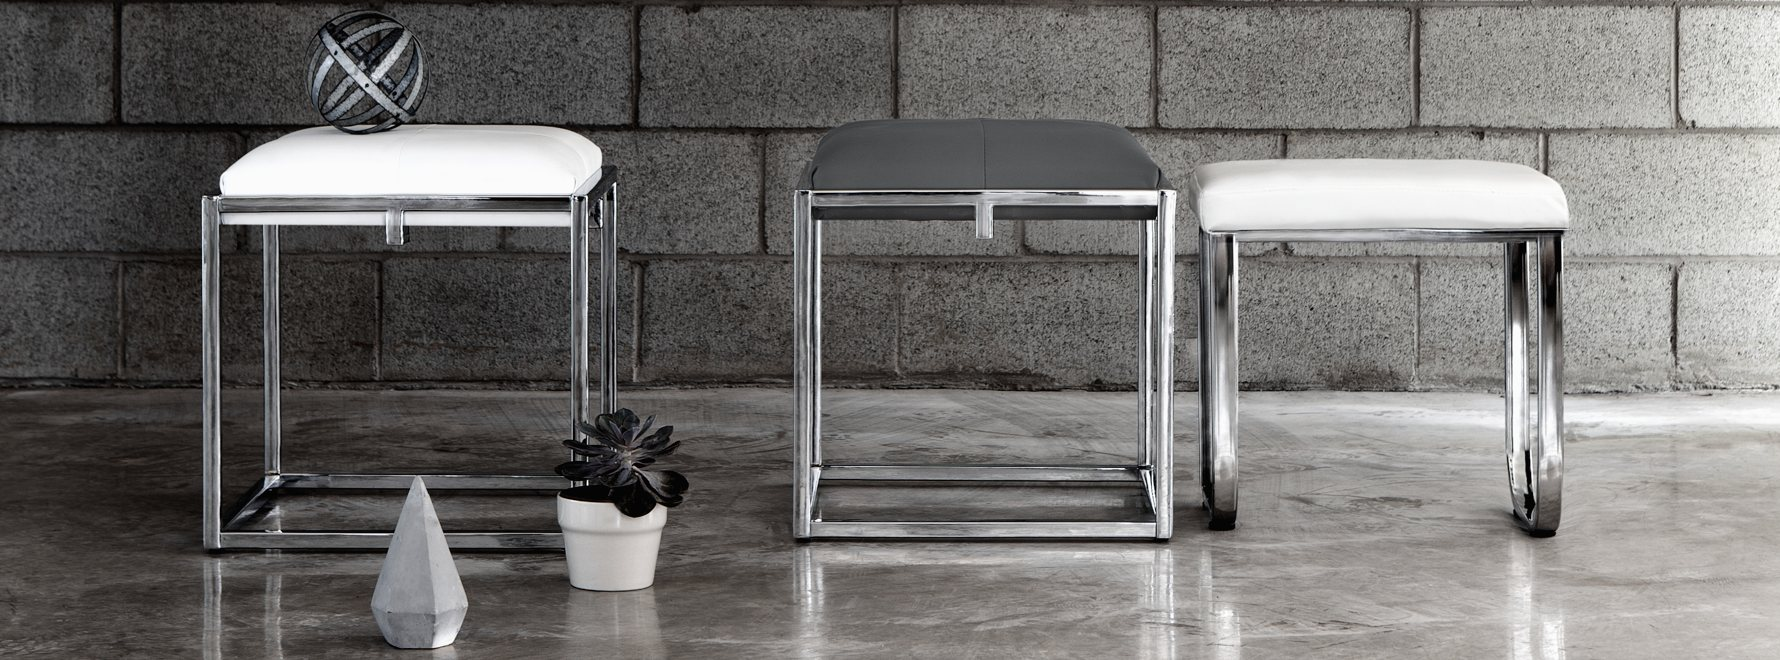 Urban furniture for Miroir bouclair